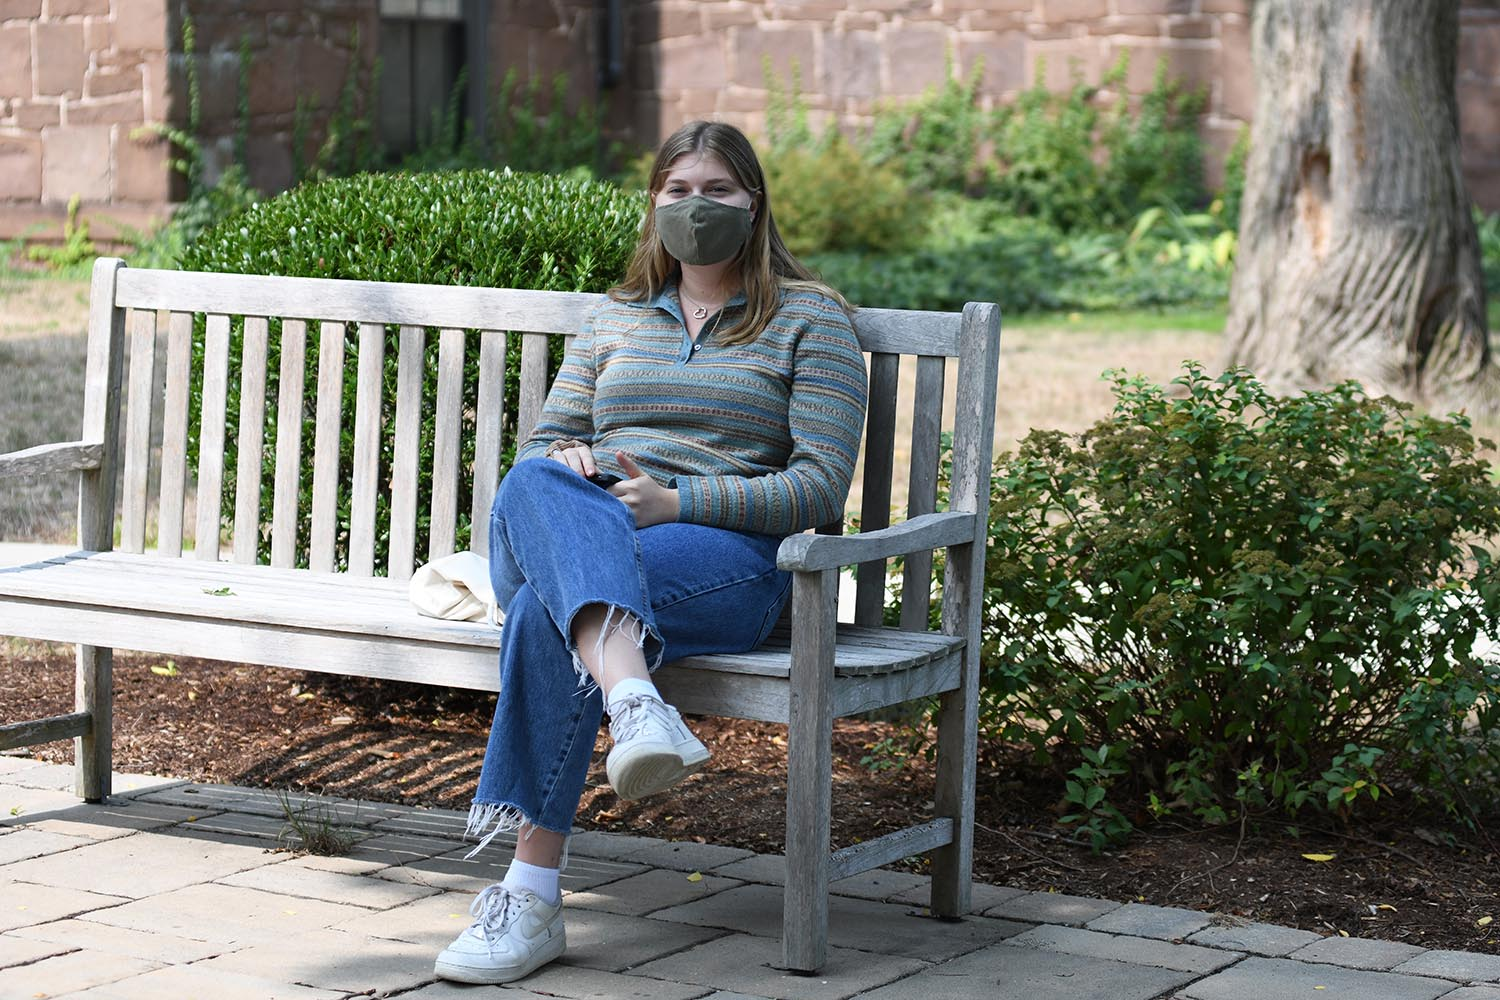 Students are required to wear masks in all public spaces.